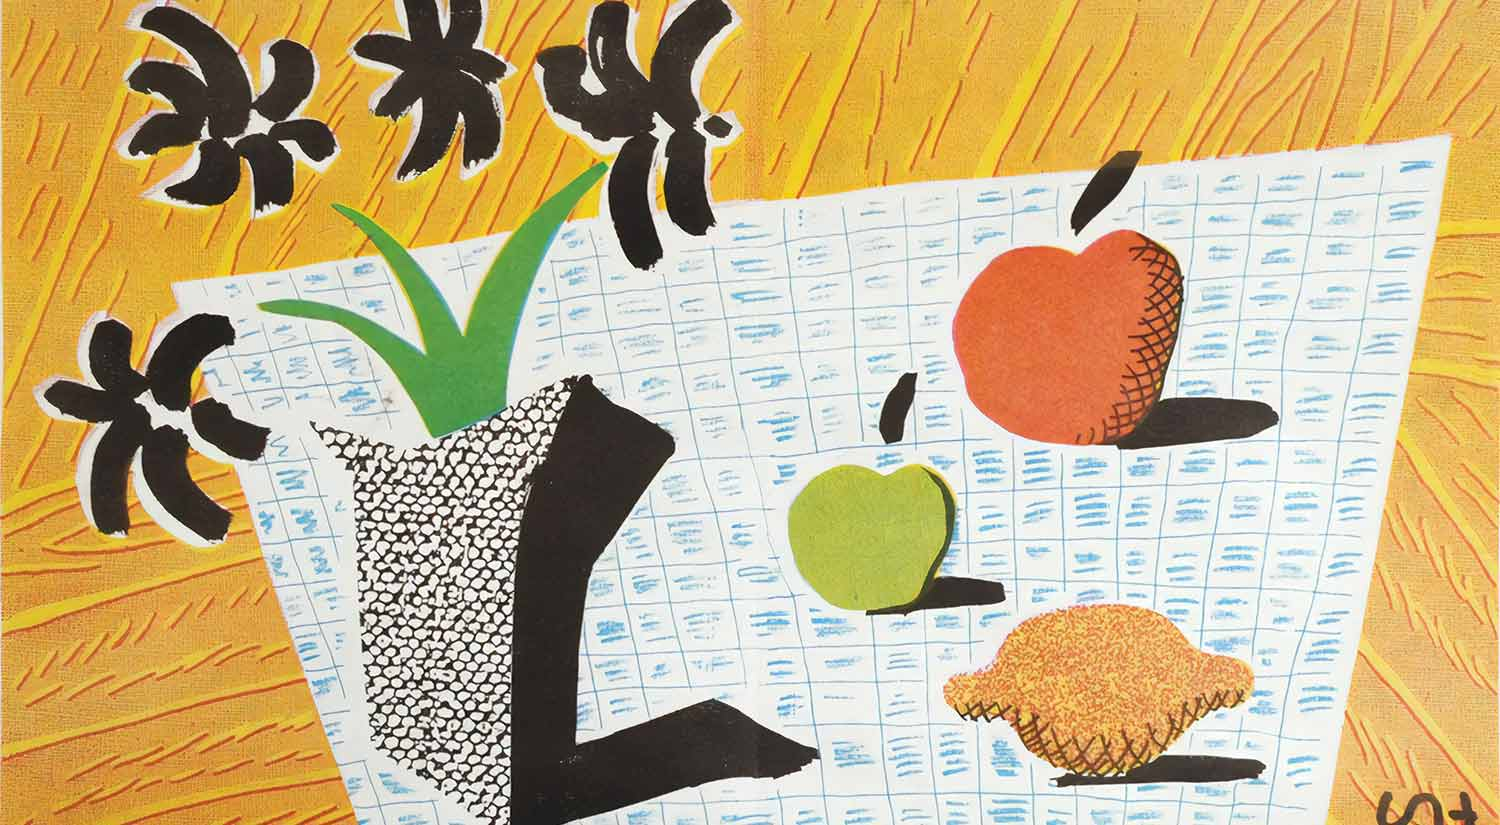 Two Apples and One Lemon and Four Flowers by David Hockney, lithograph, 1997